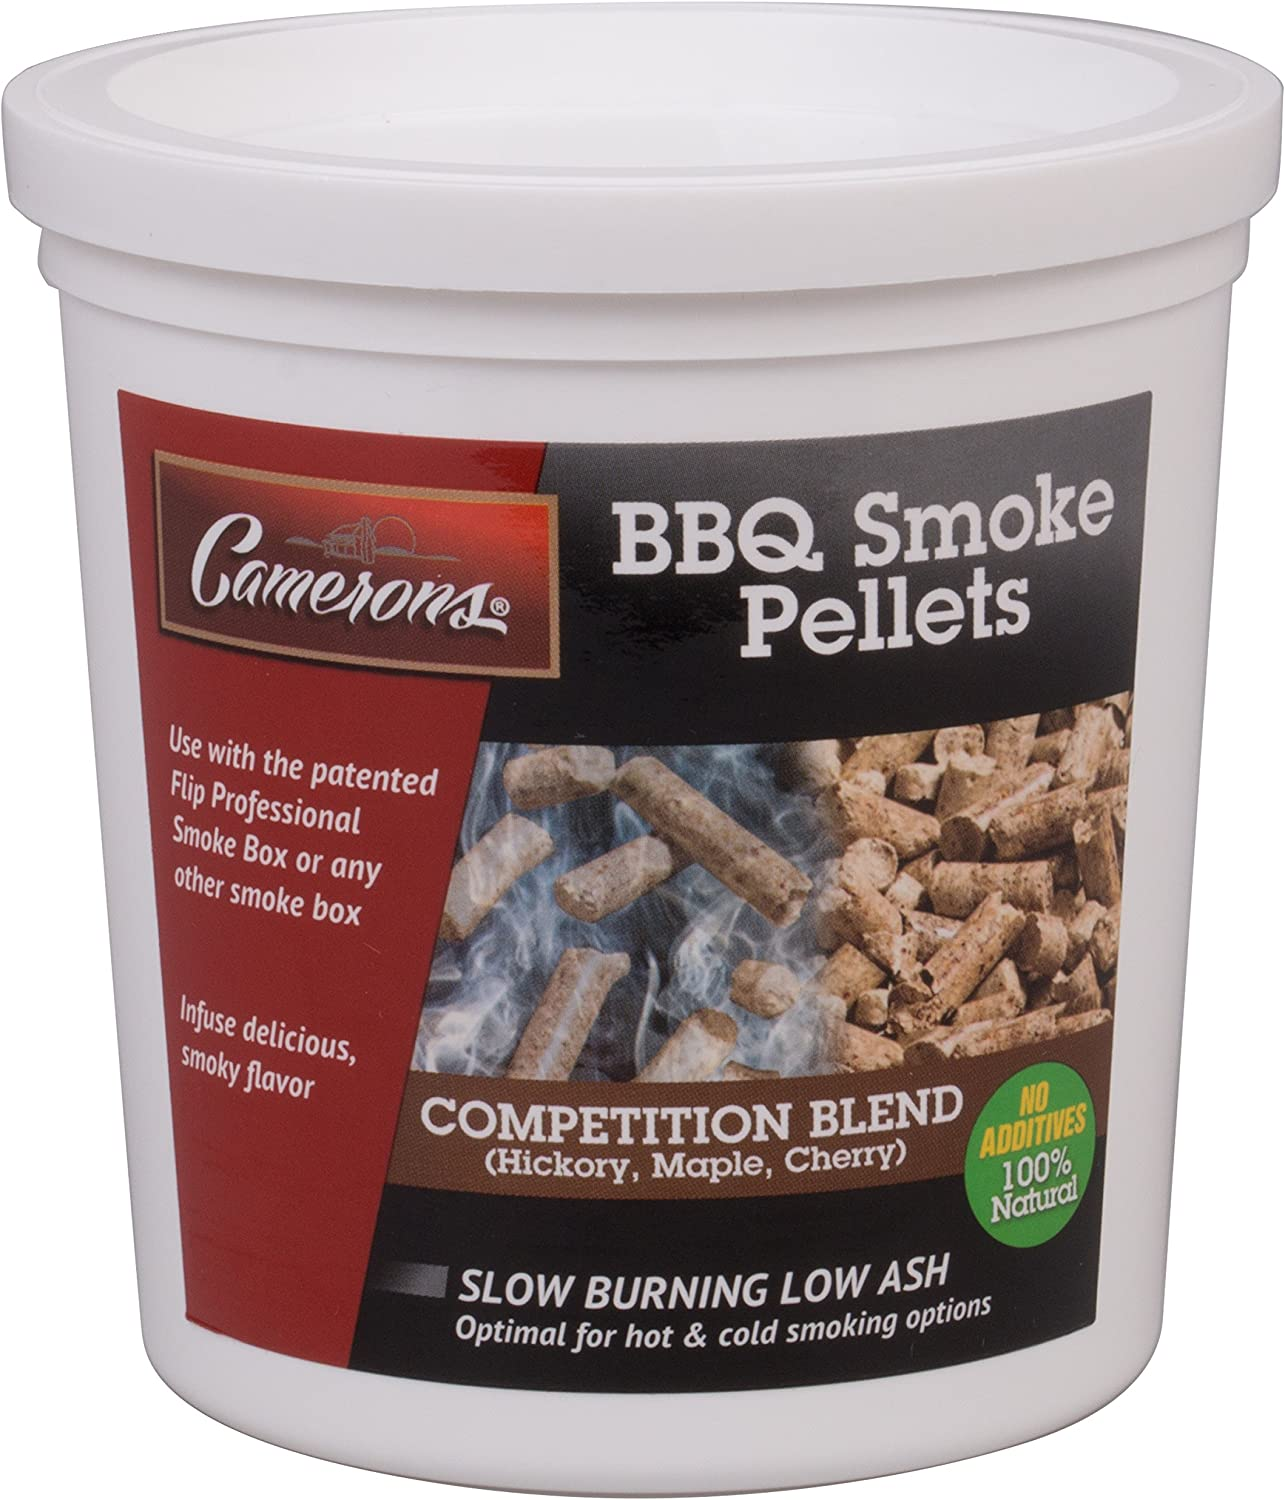 Max 50% OFF Camerons Smoking Wood Pellets Competition Blend - Kiln Dried BB Max 69% OFF